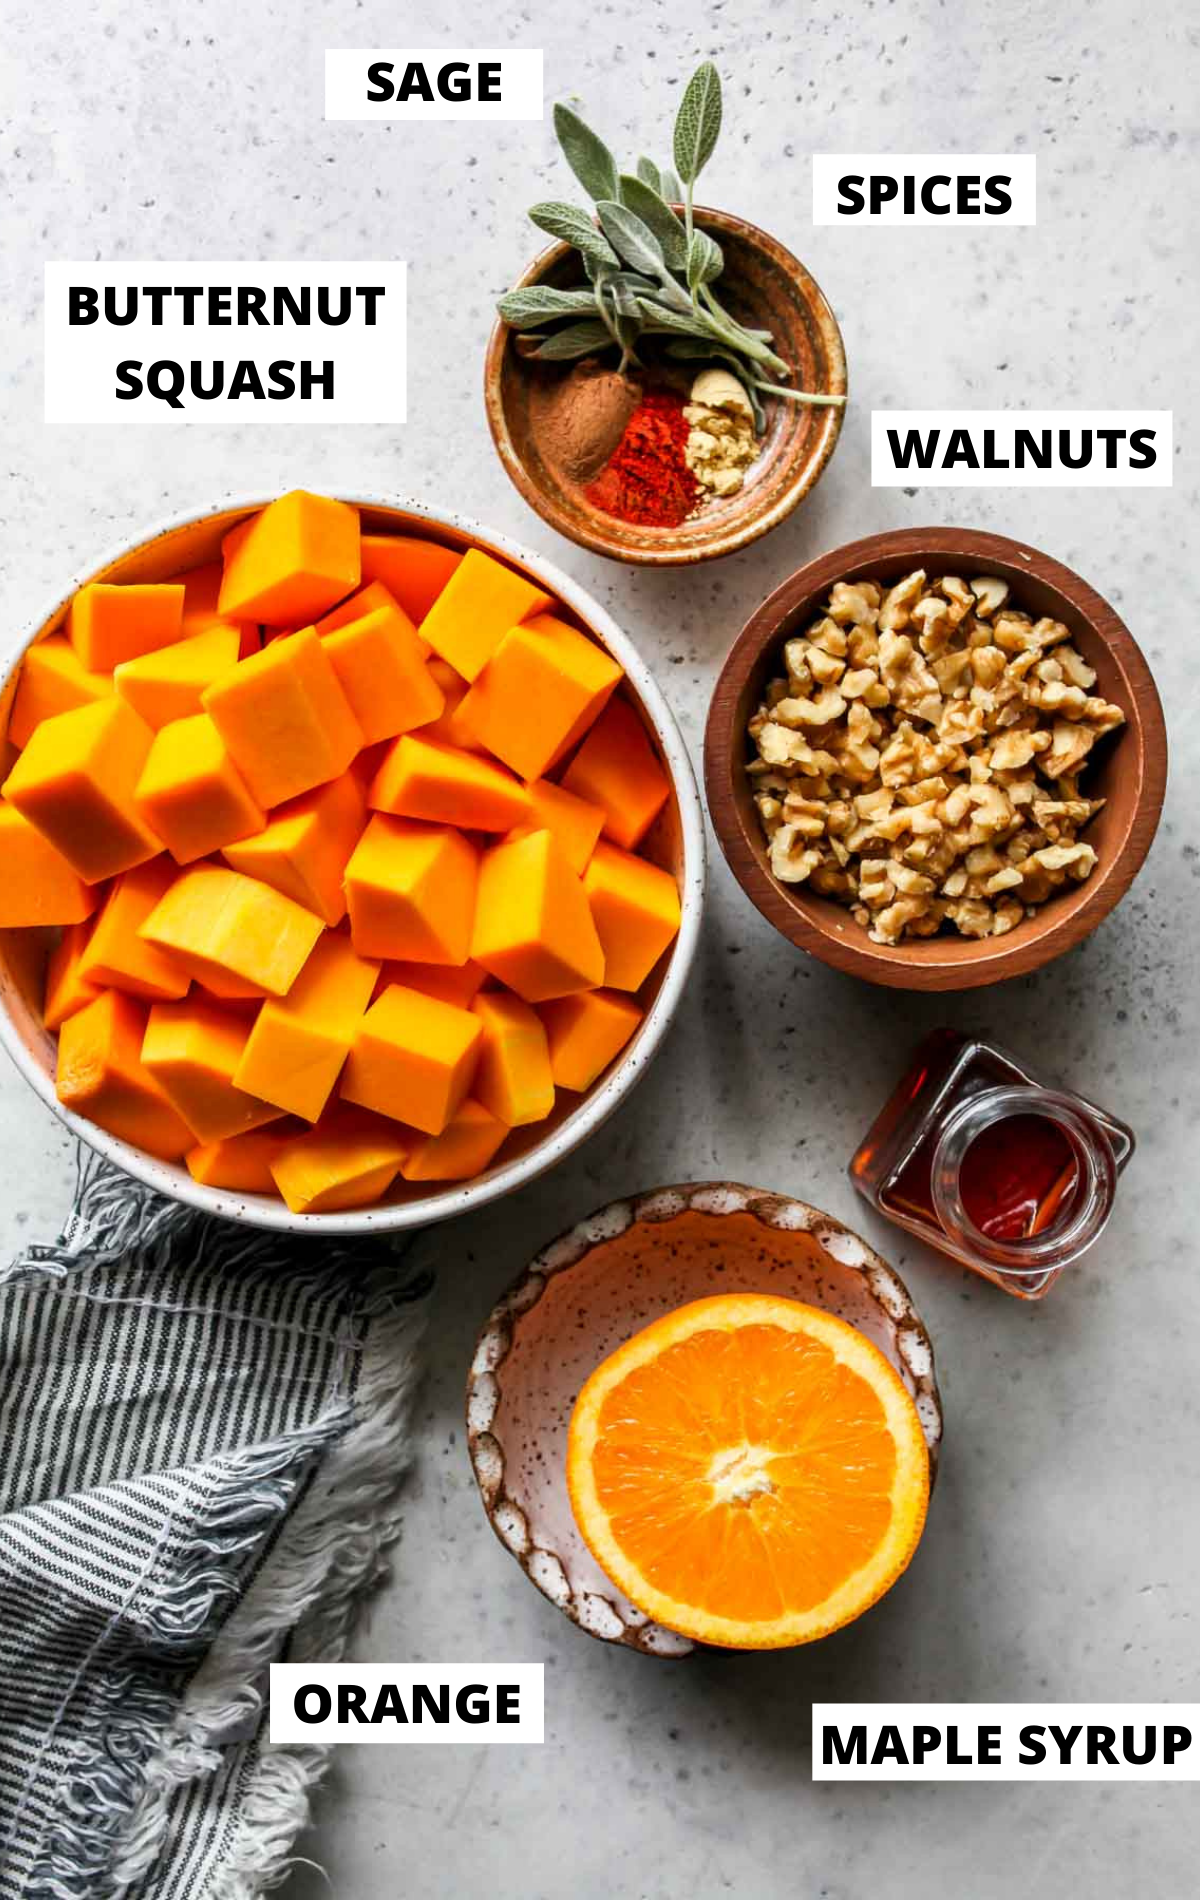 Recipe ingredients in separate bowls on a gray board with labels